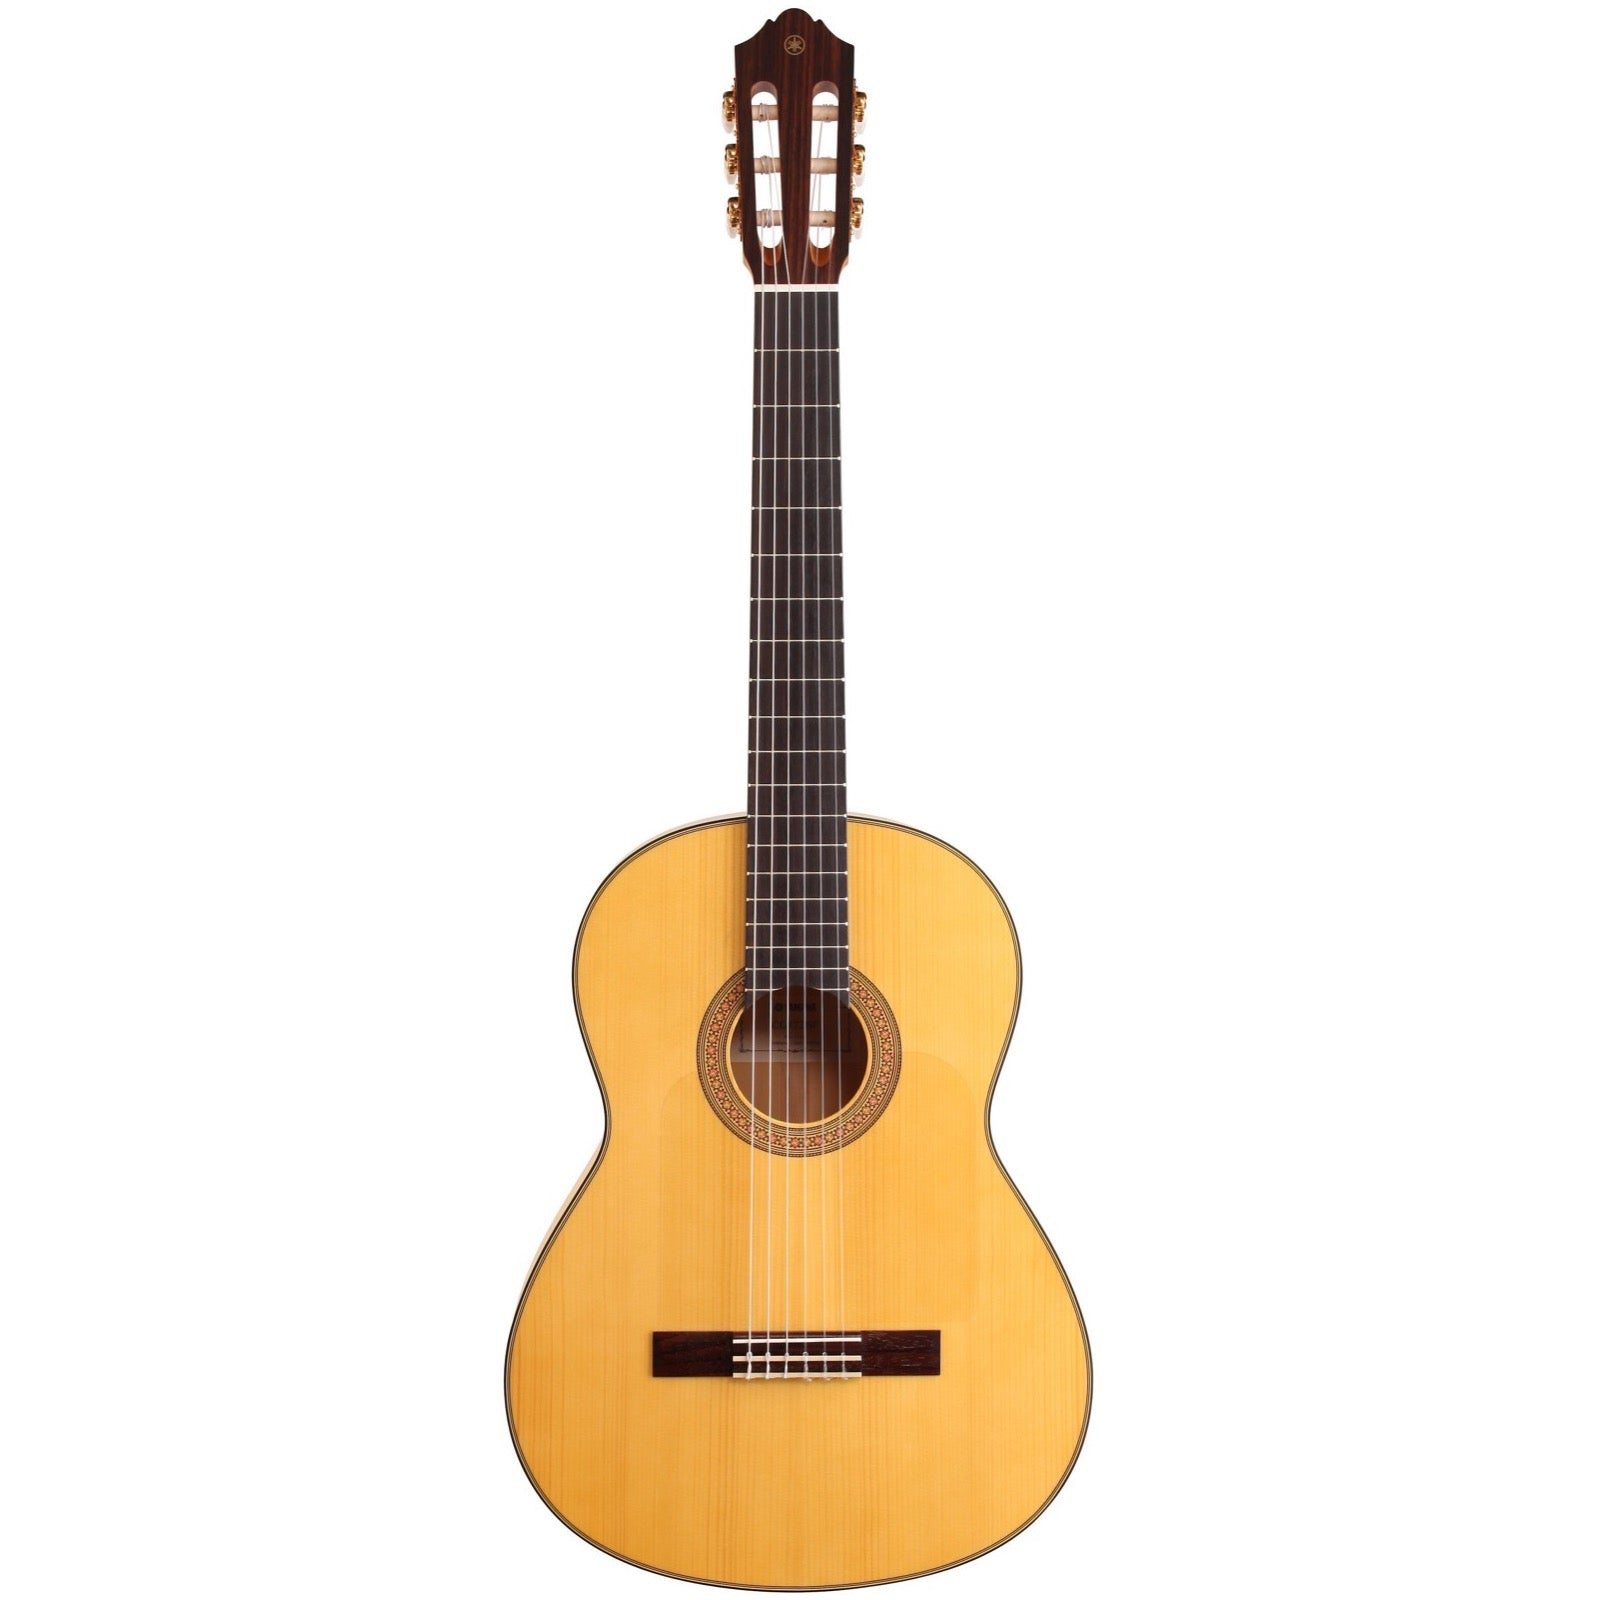 Yamaha CG172SF Flamenco Classical Acoustic Guitar